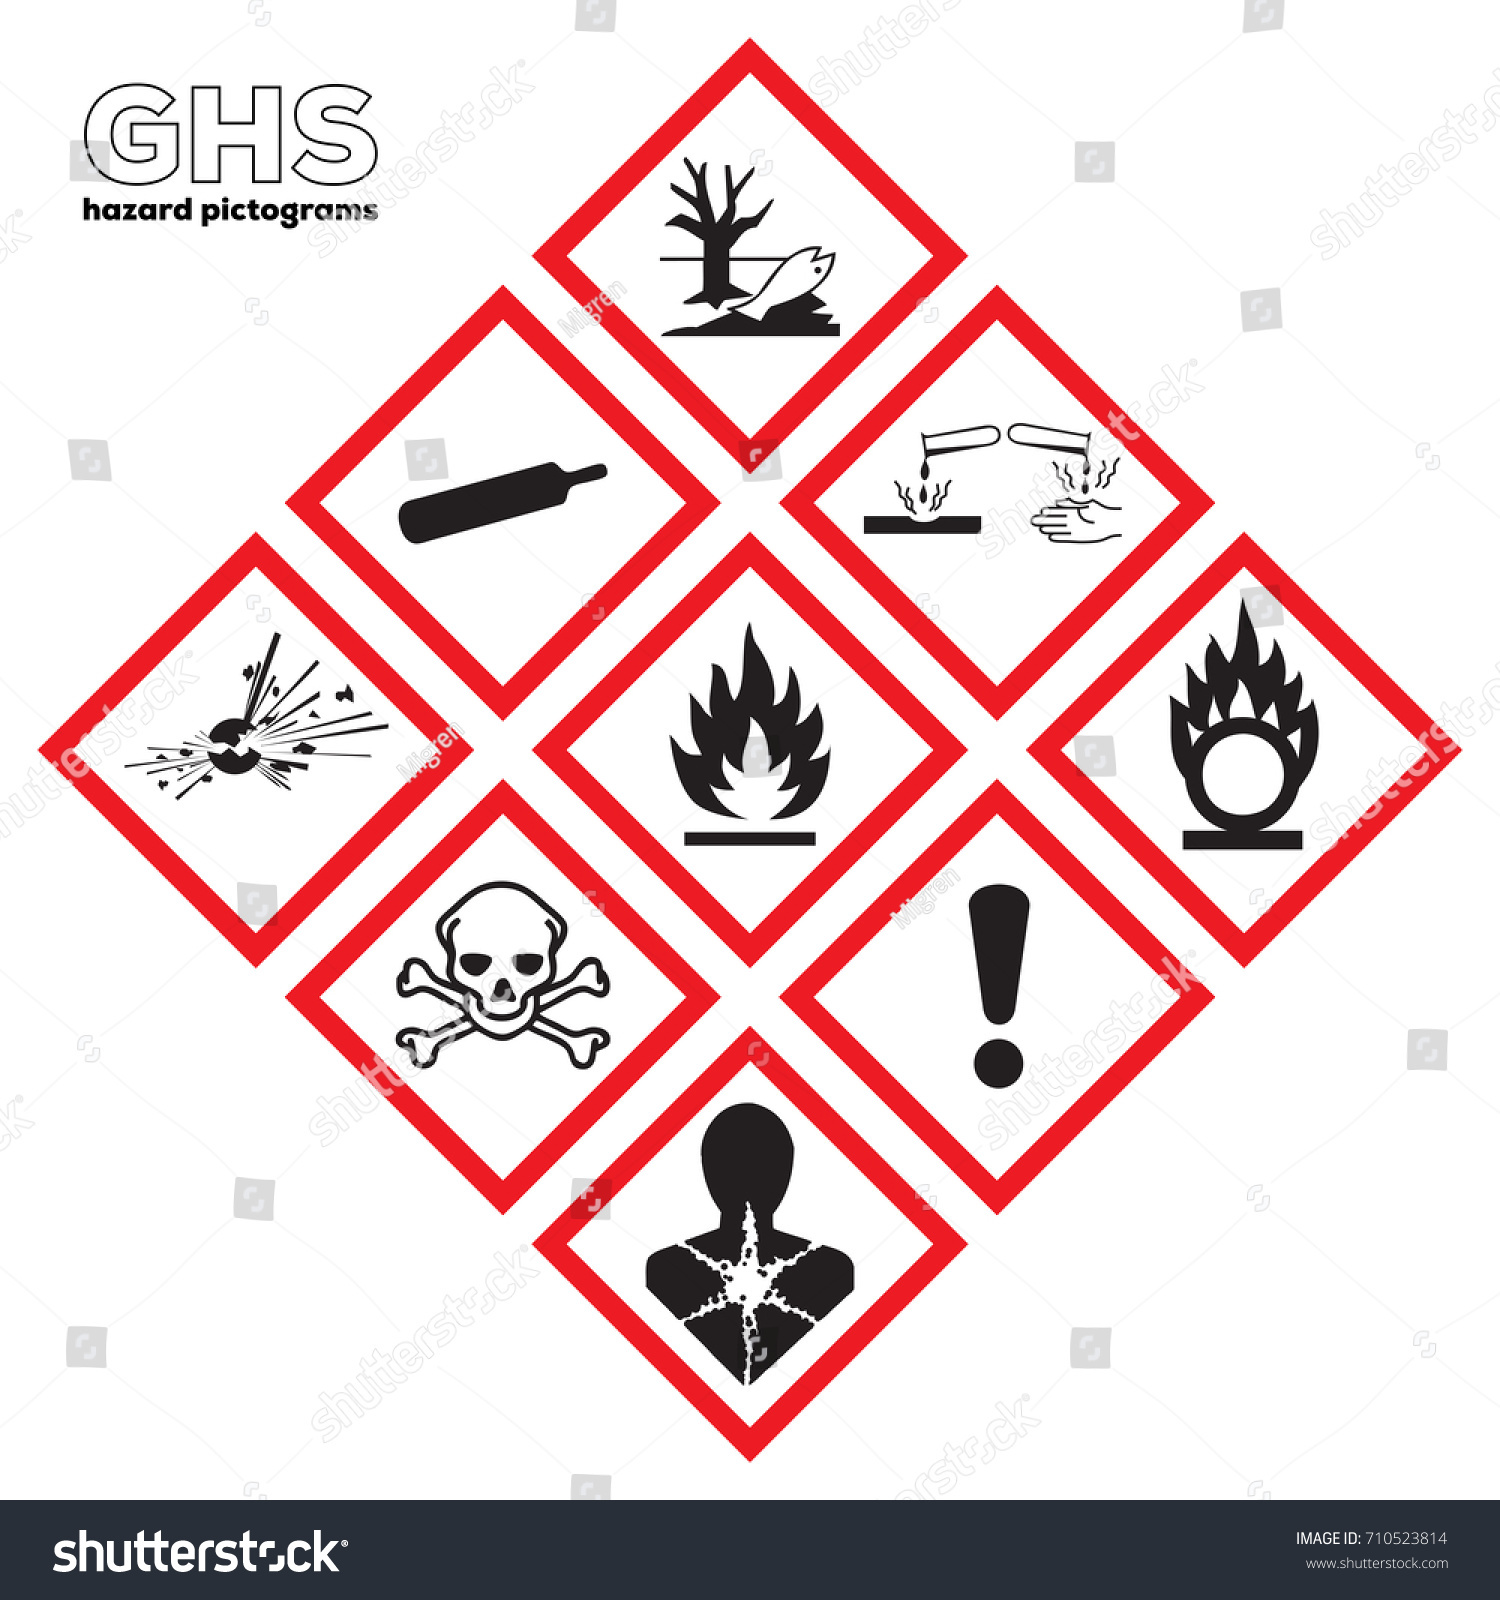 Icon Ghs Danger Safety Corrosive Chemical Stock Vector Royalty Free